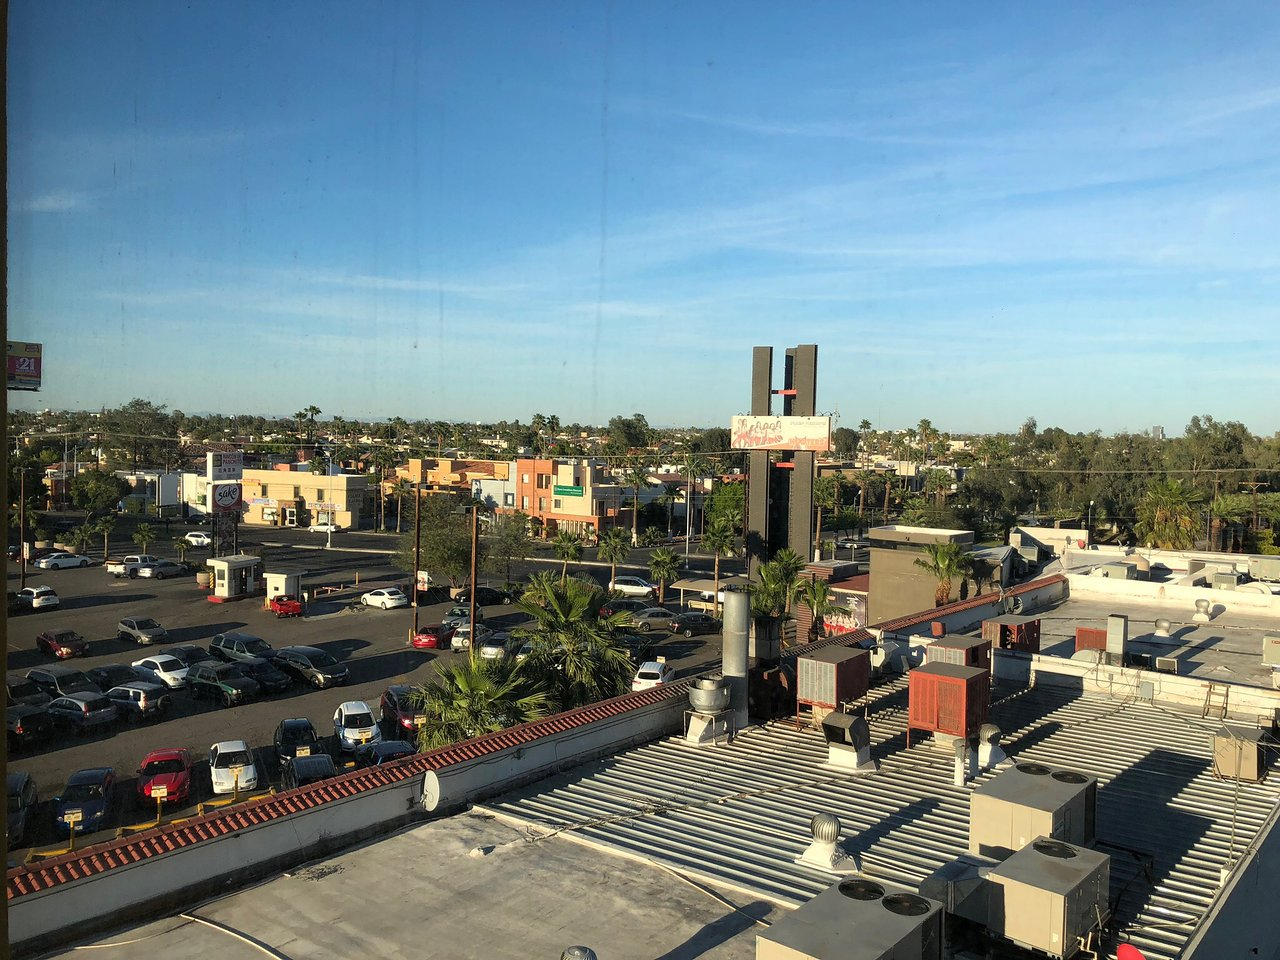 THE 10 BEST Hotels in Mexicali for 2019 (from $23) - TripAdvisor